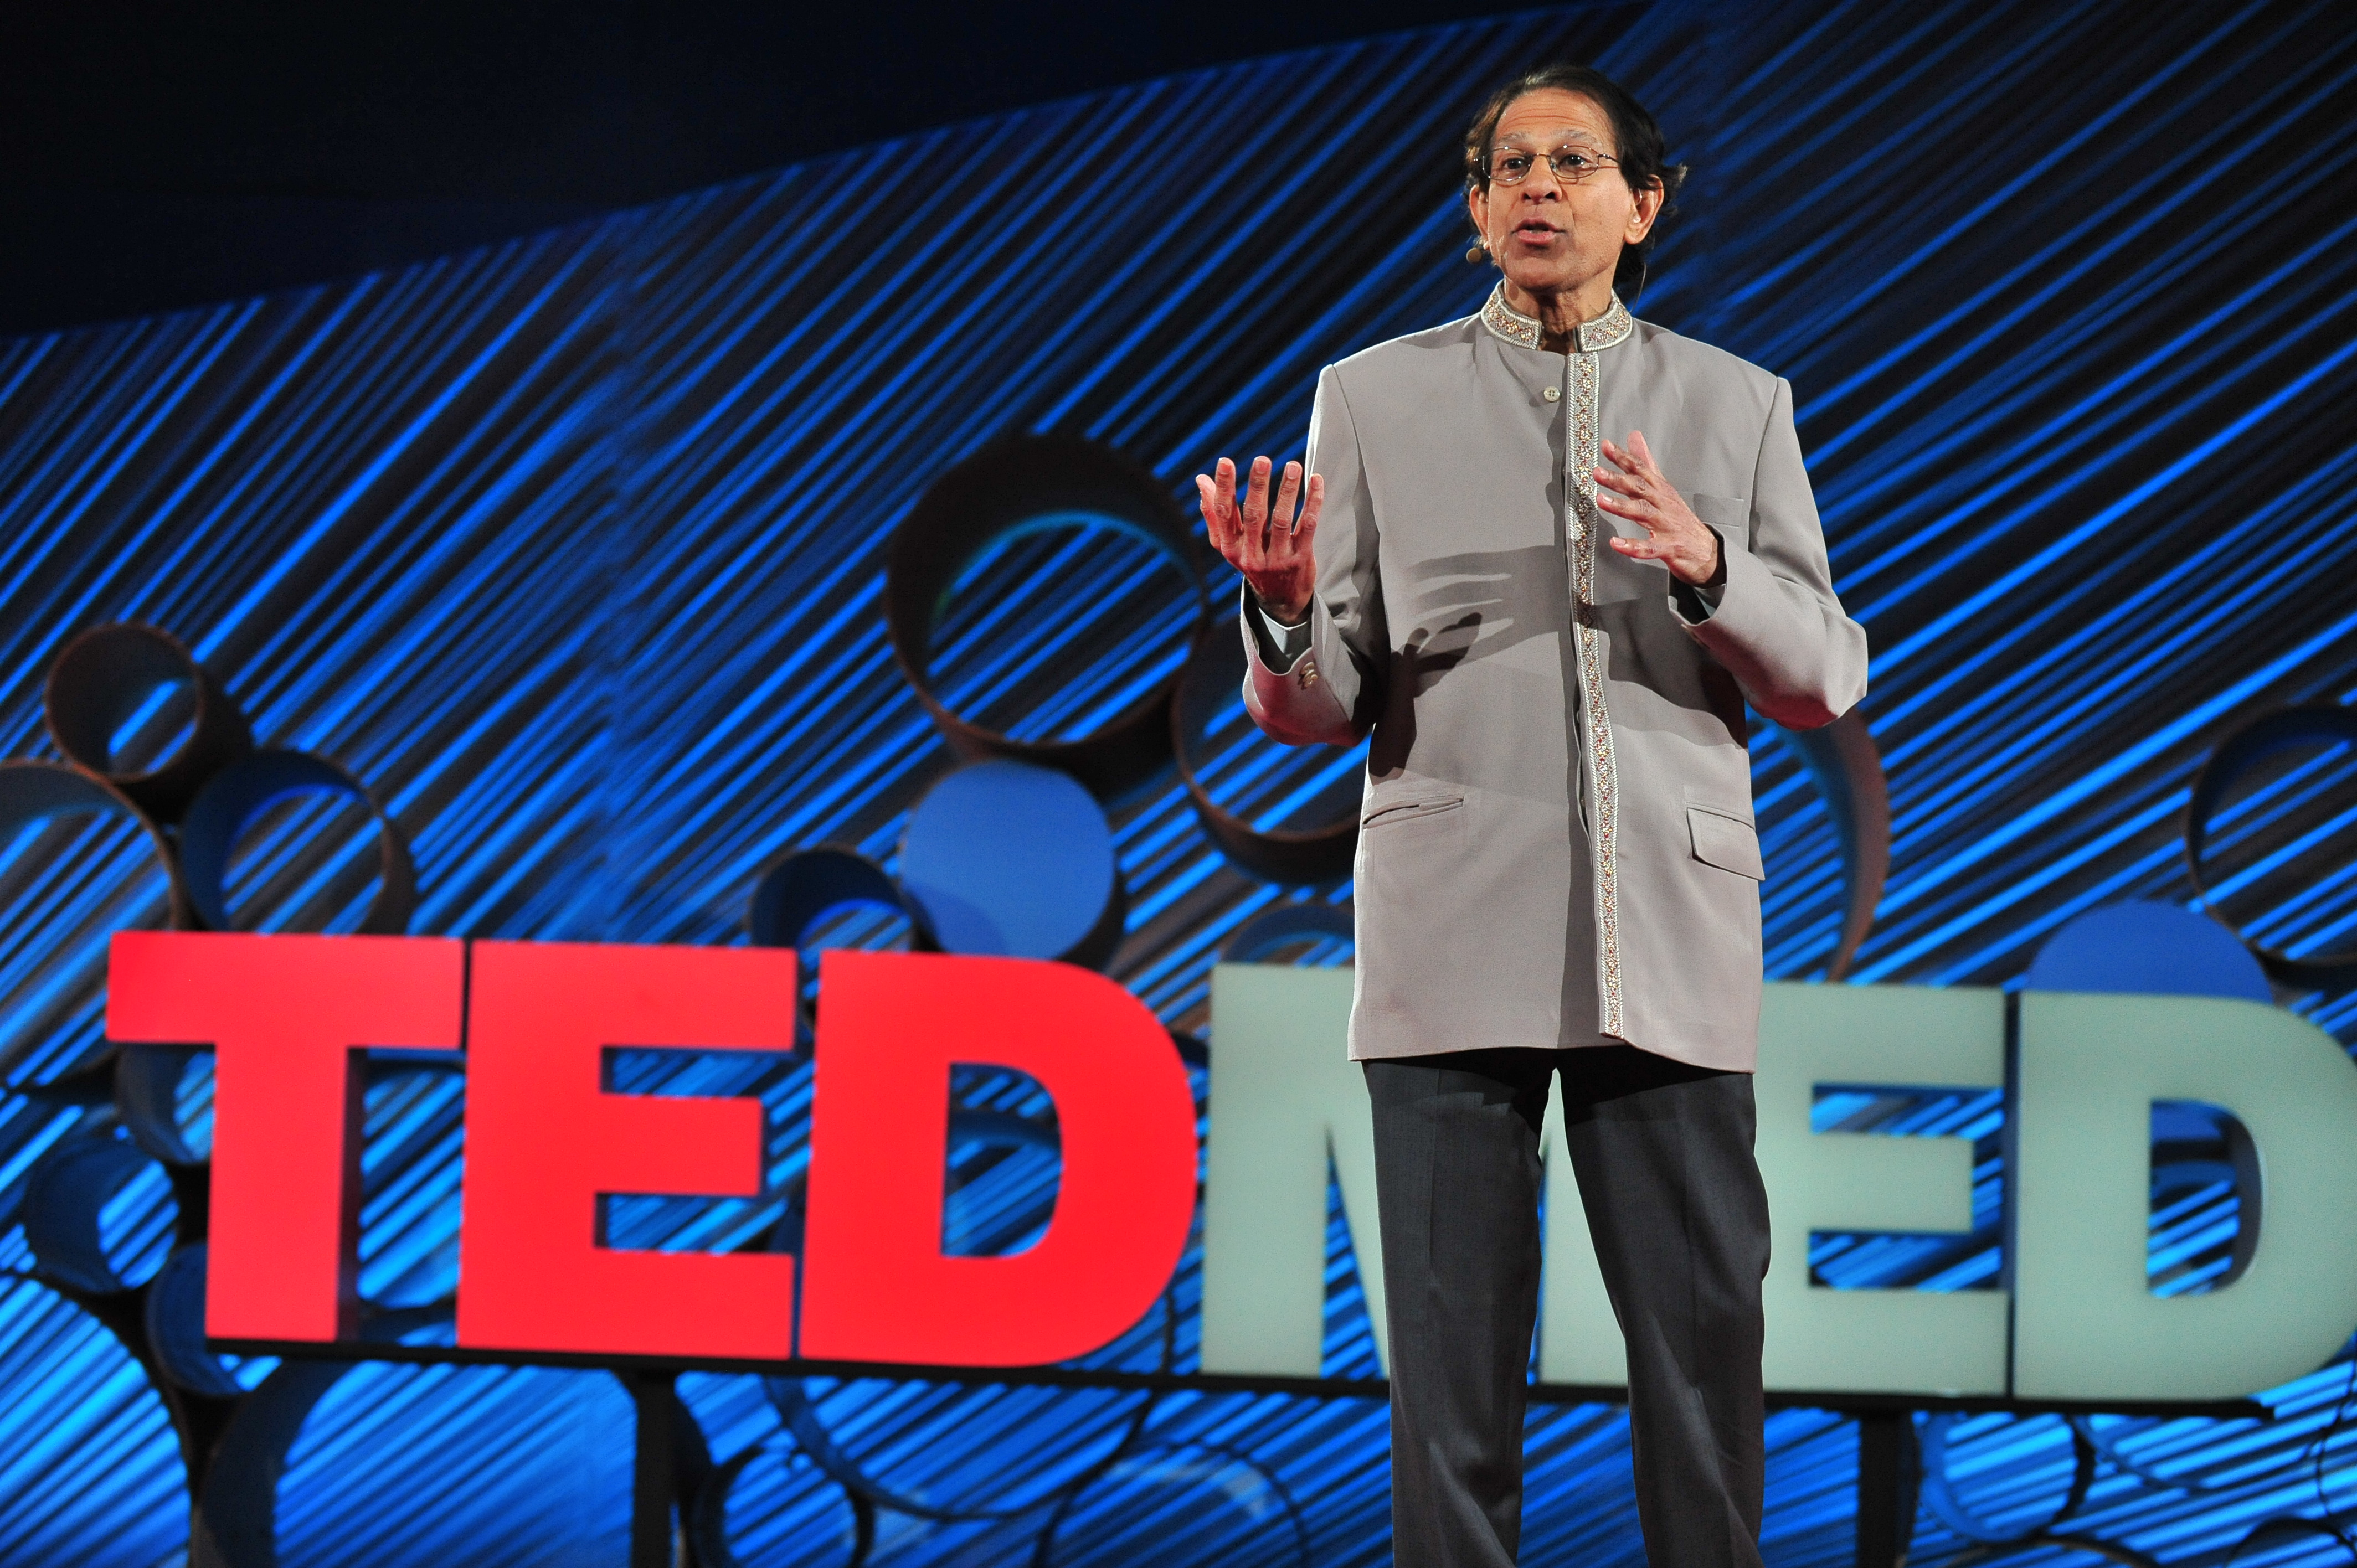 Dilip Jeste, MD on TEDMED Stage - 5